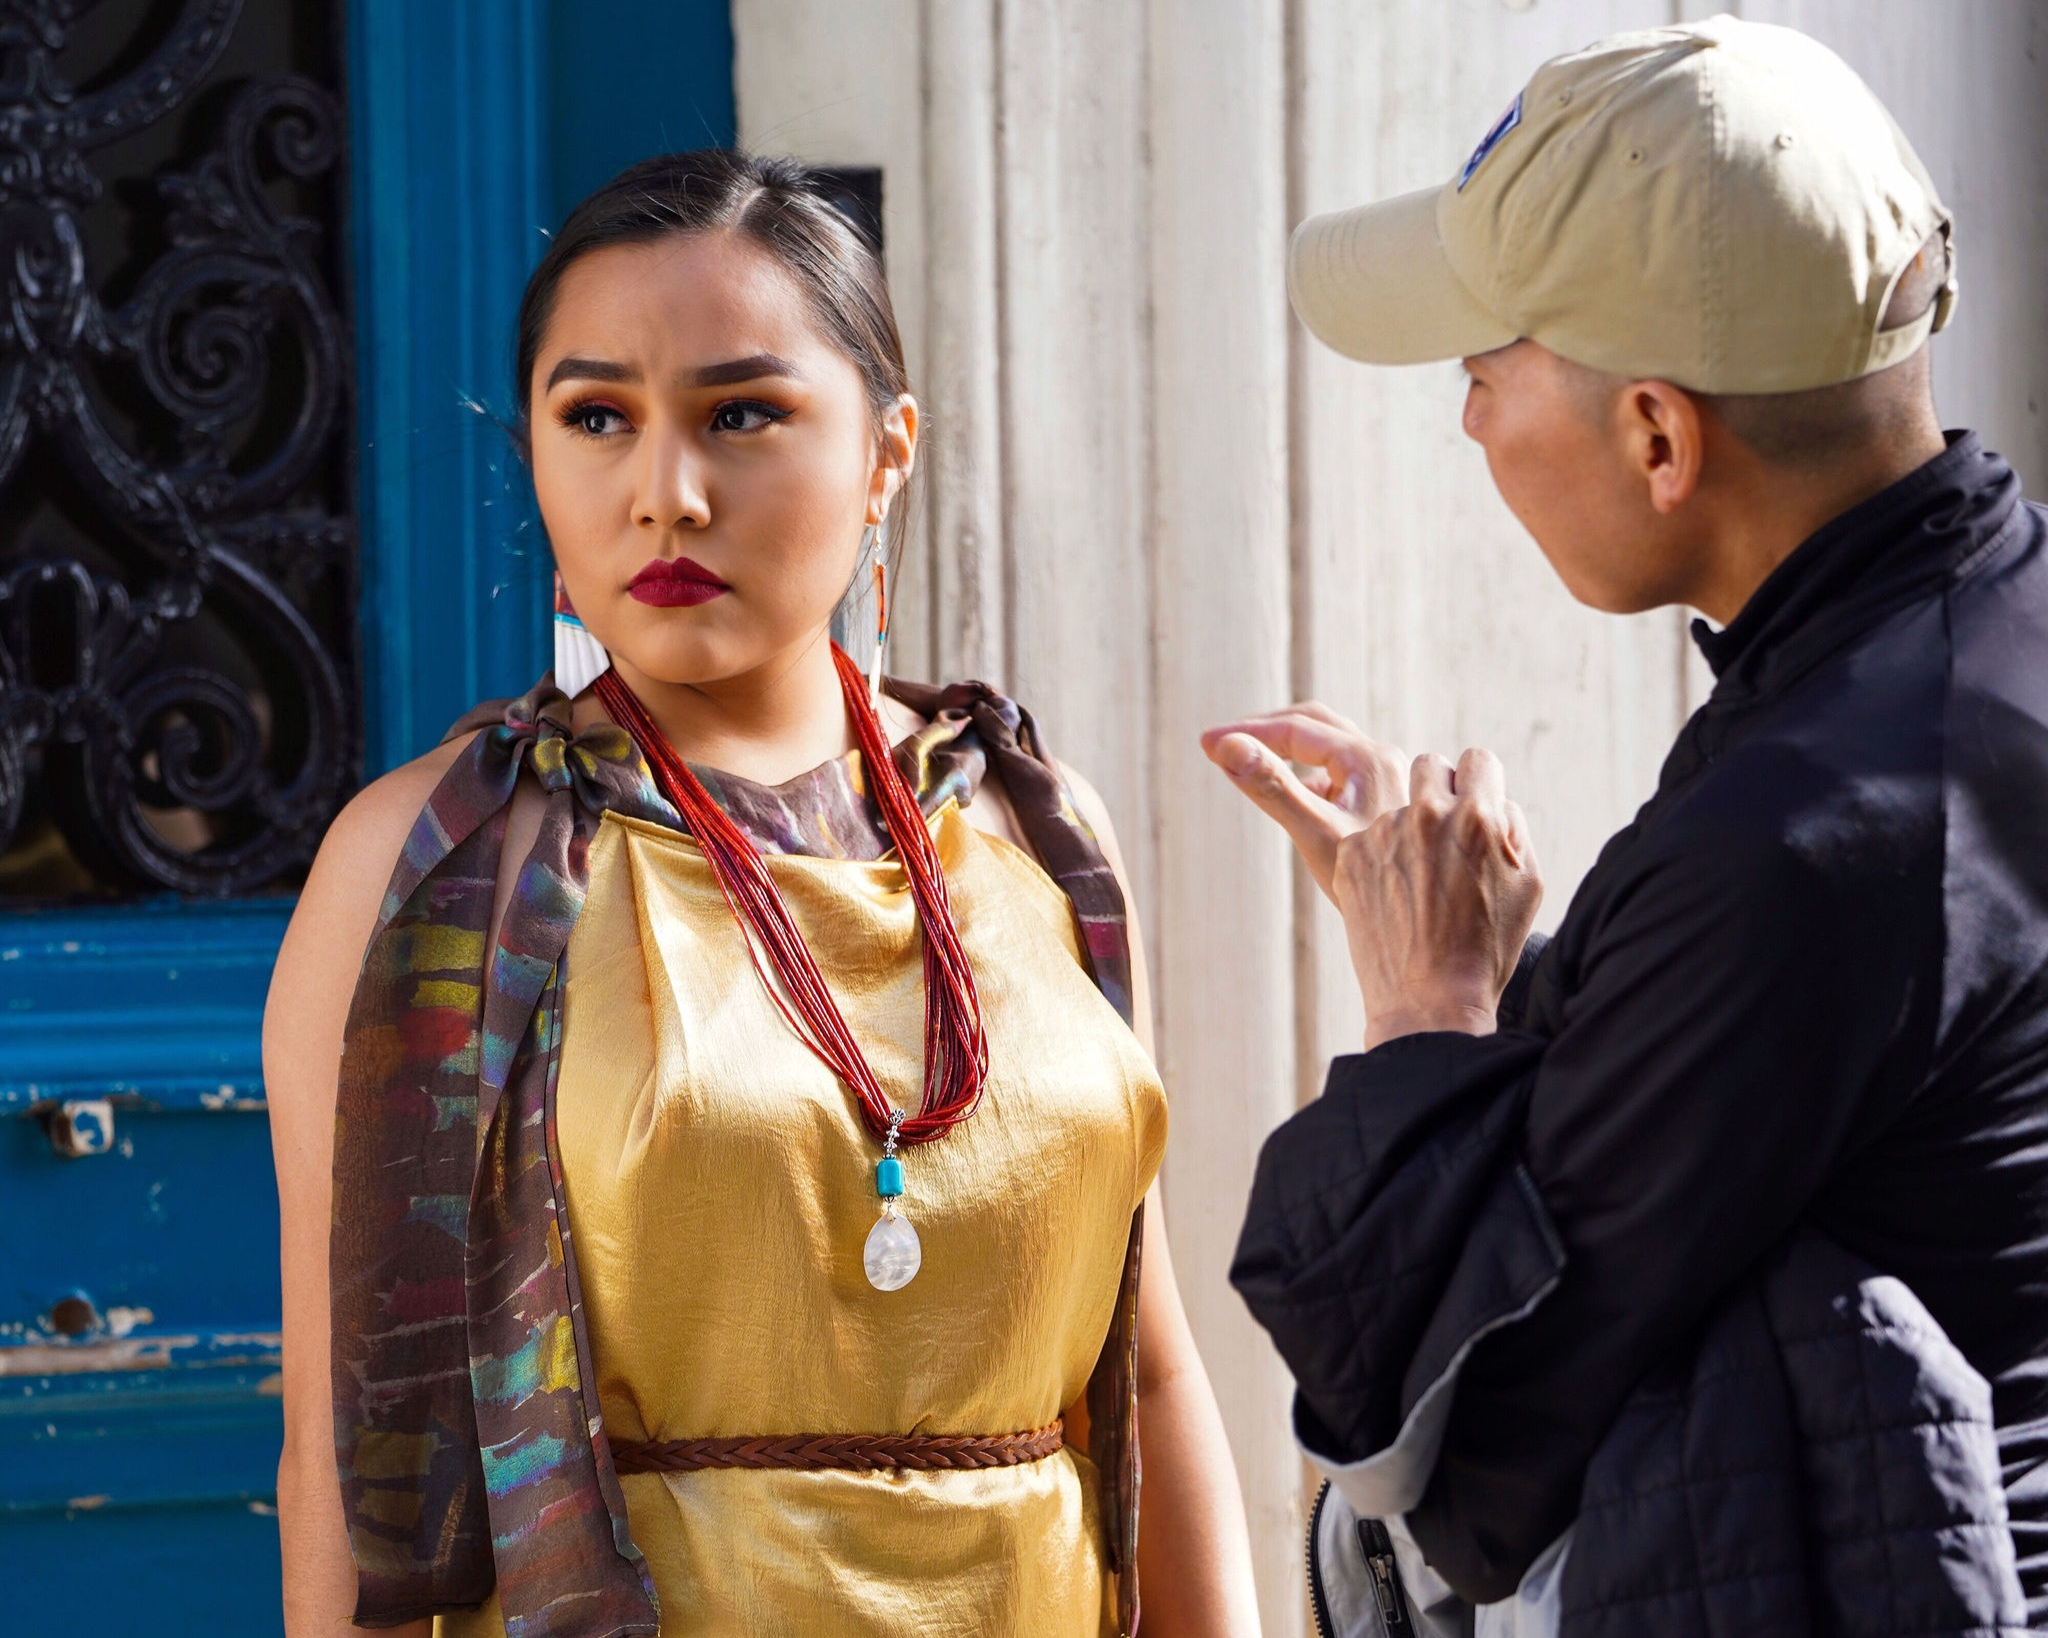 International Navajo/Diné Model: Shenoa Jones & Designer Jolonzo Goldtooth, Photo Shoot in Paris France for the International Indigenous Fashion Week (Courtesy Photo by Shady Bear Photography)